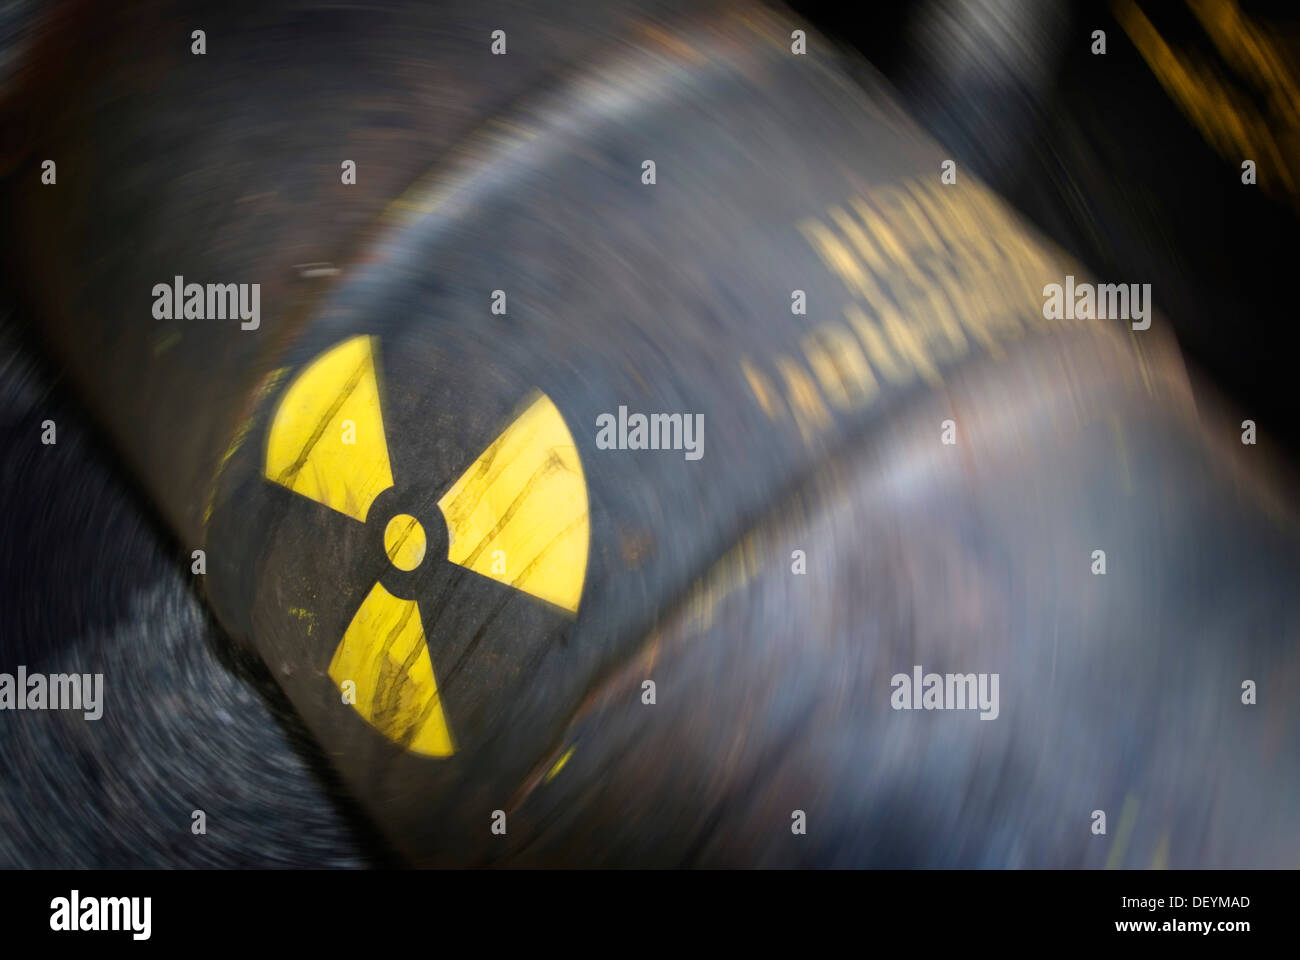 Rusty barrel with a radiation warning symbol Stock Photo